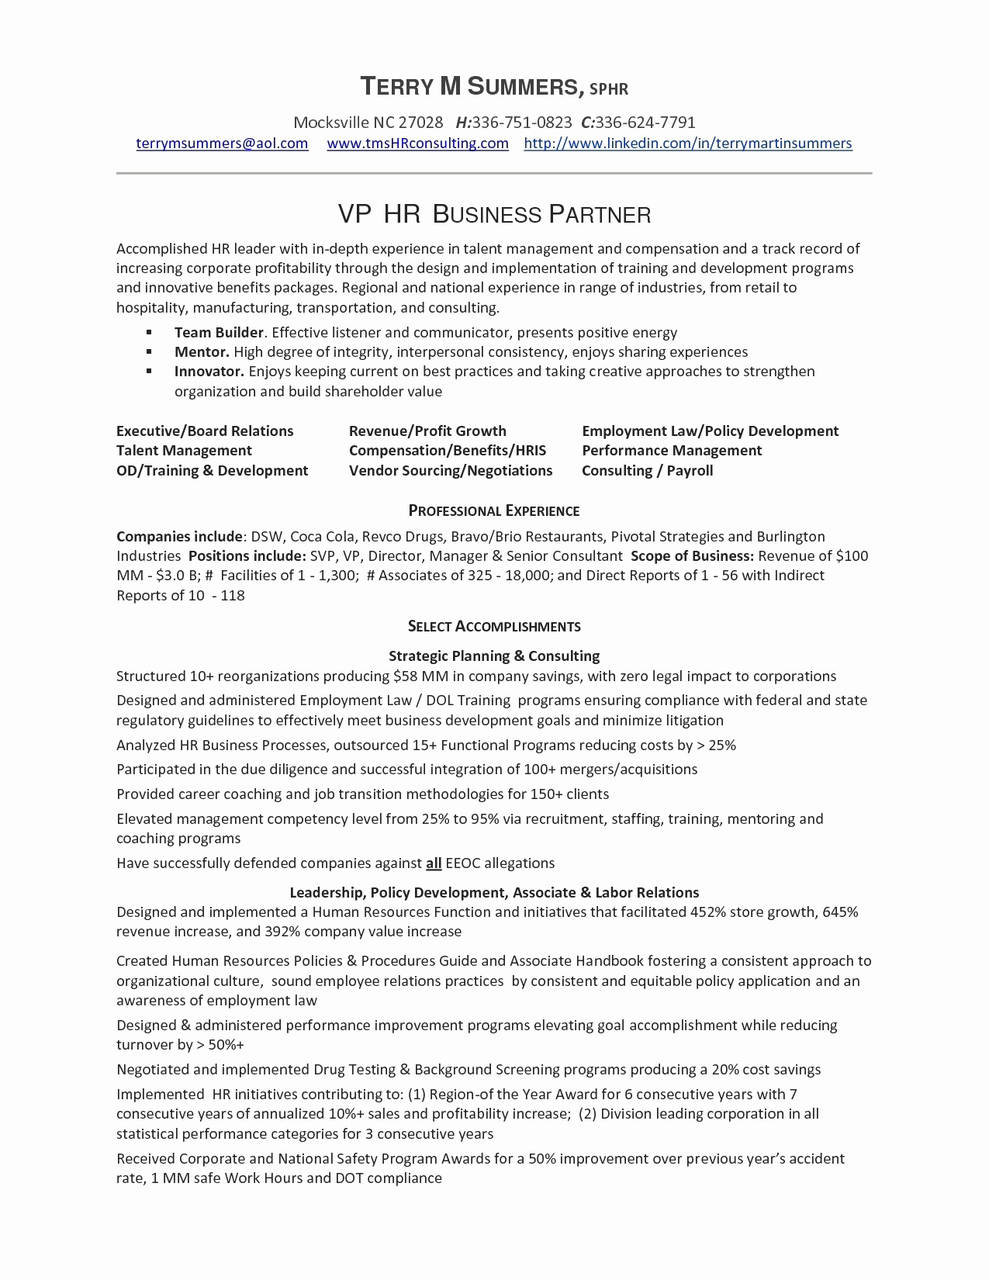 Resumes Planet Review - Resume Writing Group